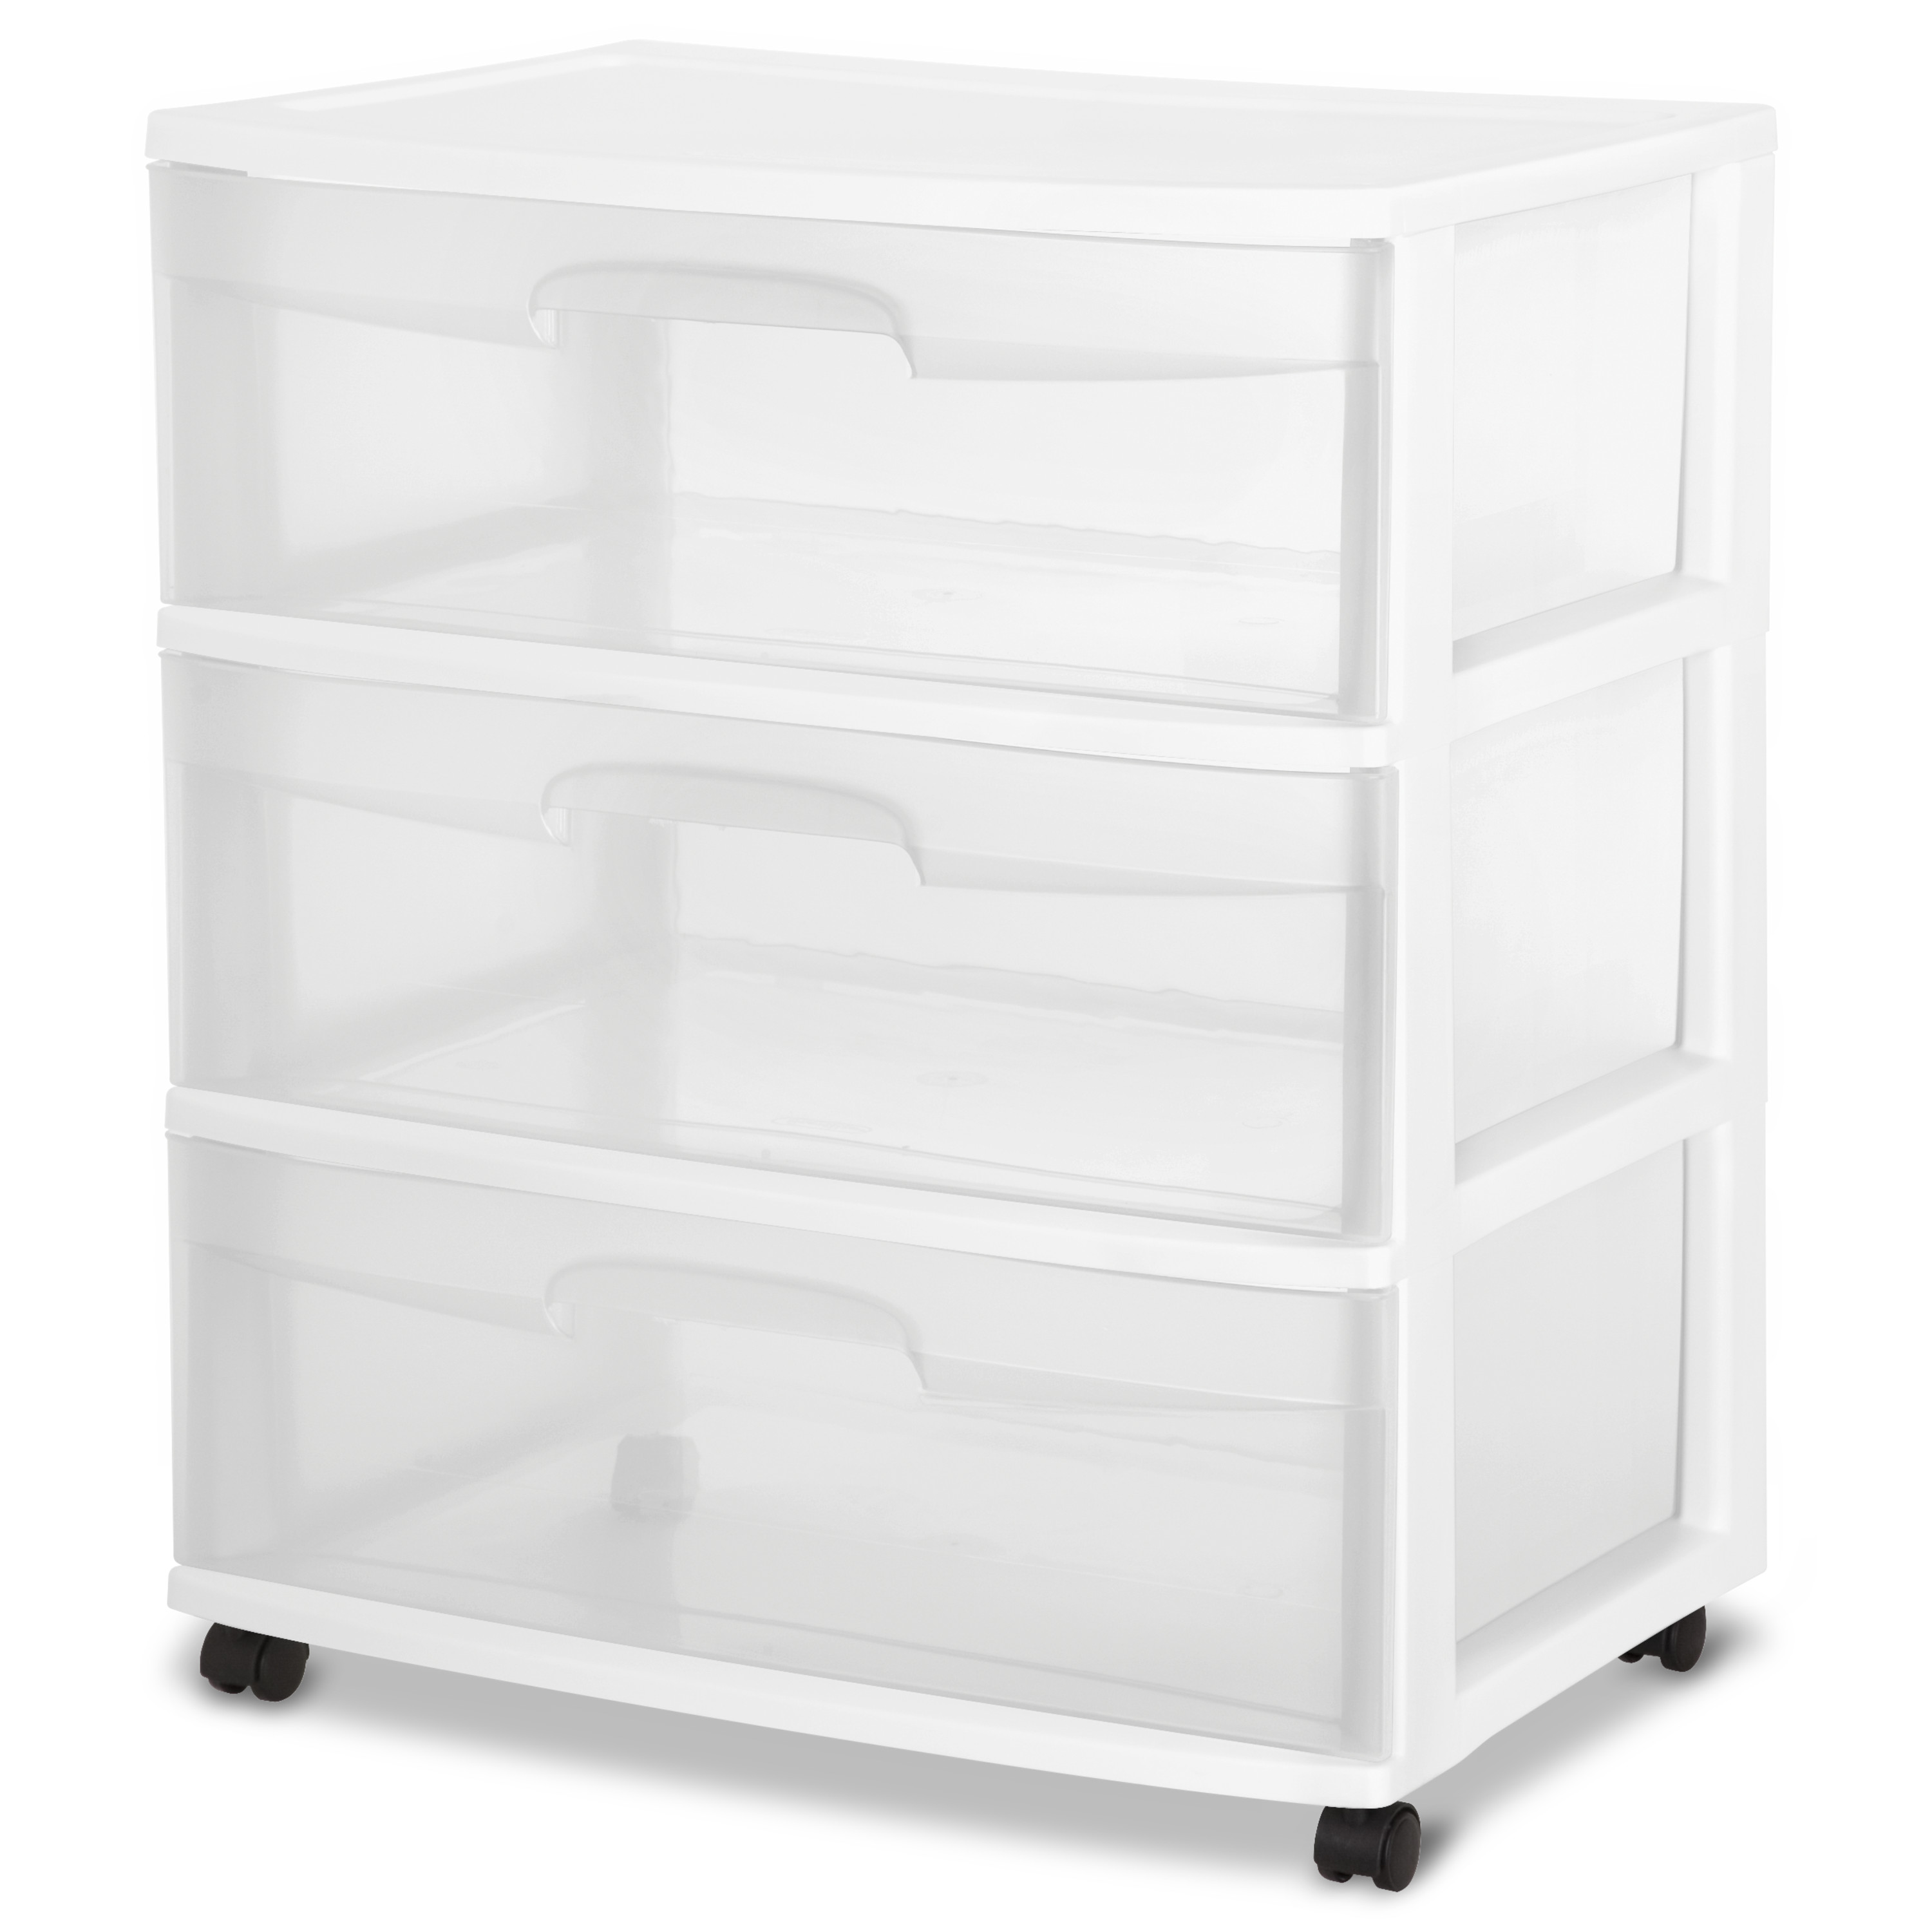 Sterilite 3 Drawer Wide Cart, White - Walmart com